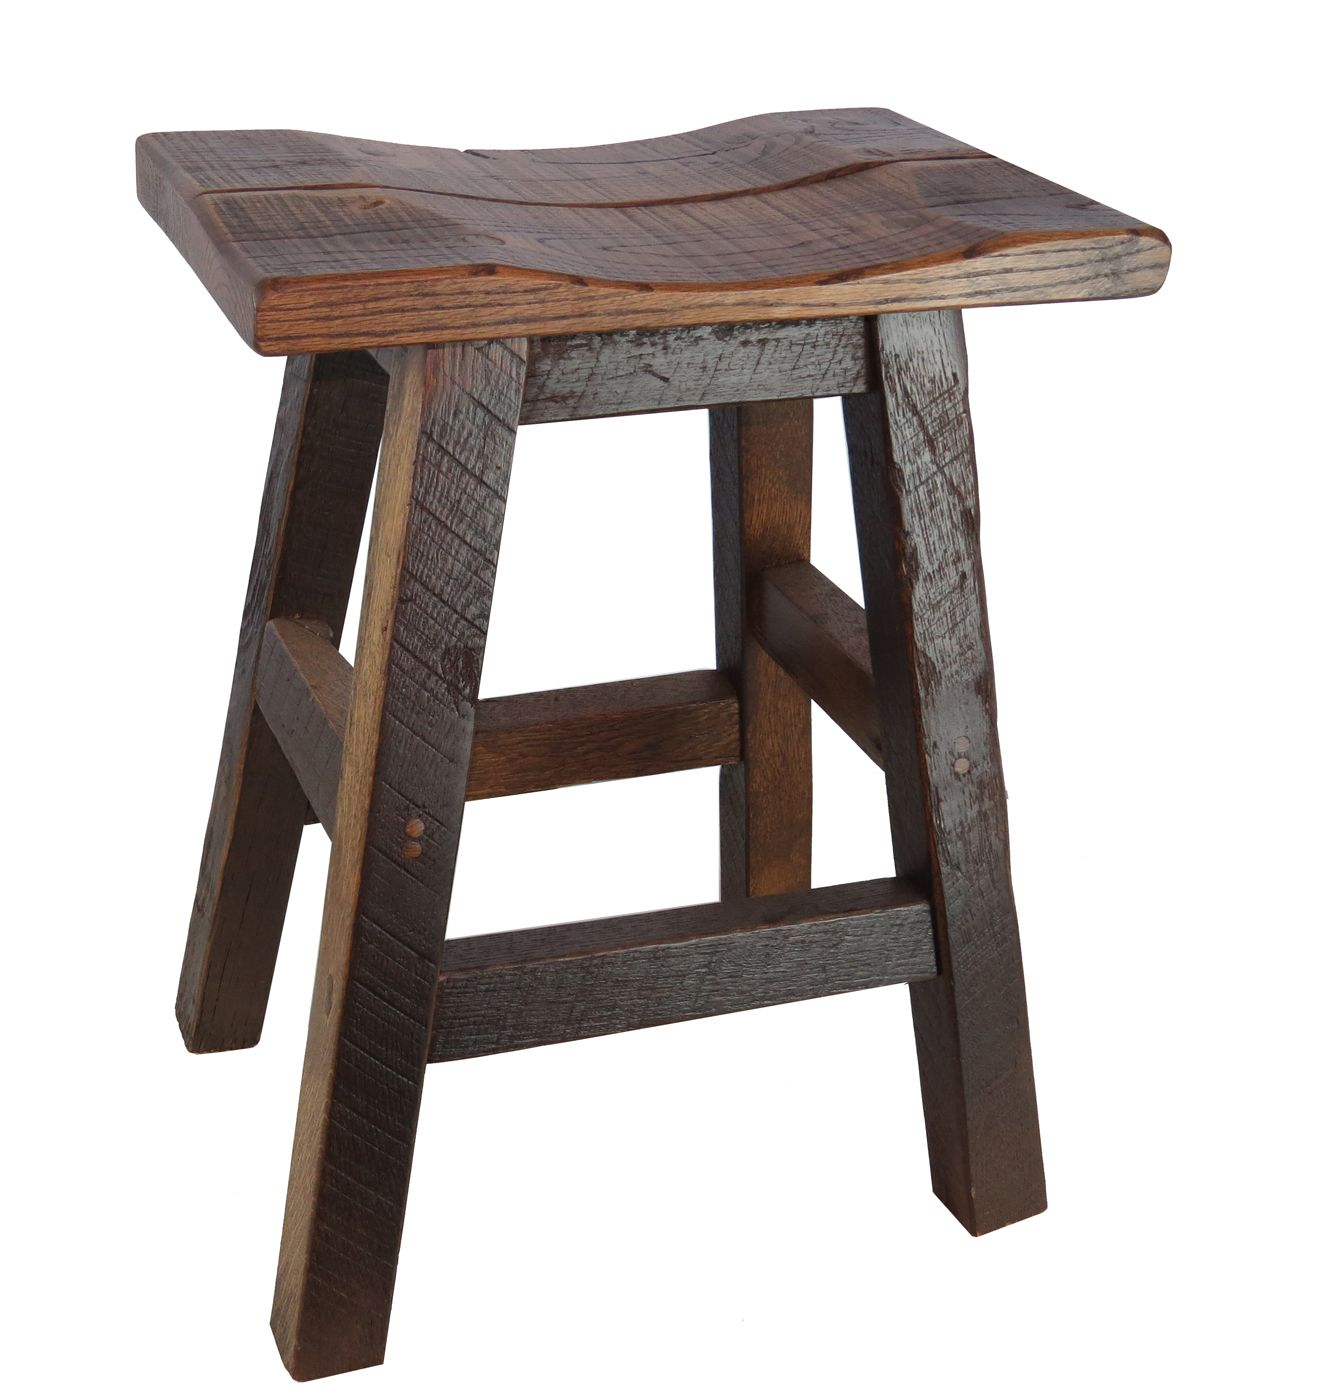 Barnwood Bar Stools 24 Saddle Seat Wood bar stools Wood bars